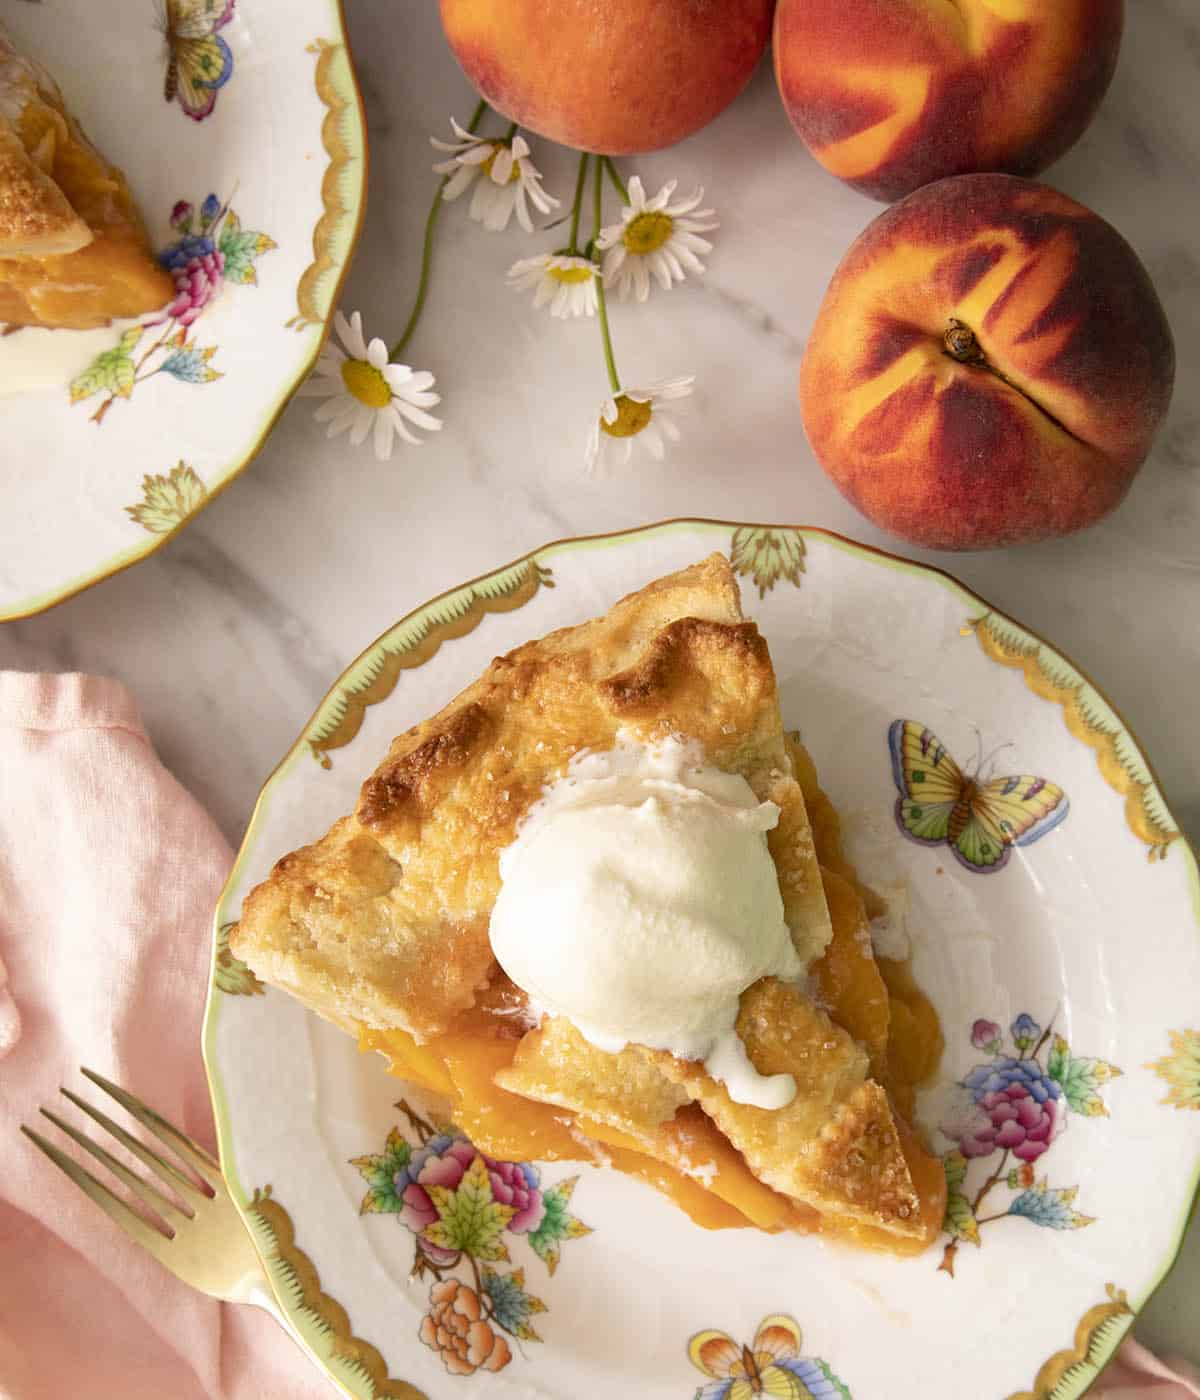 A top-down photo of a peach pie piece with melting vanilla ice cream on top.